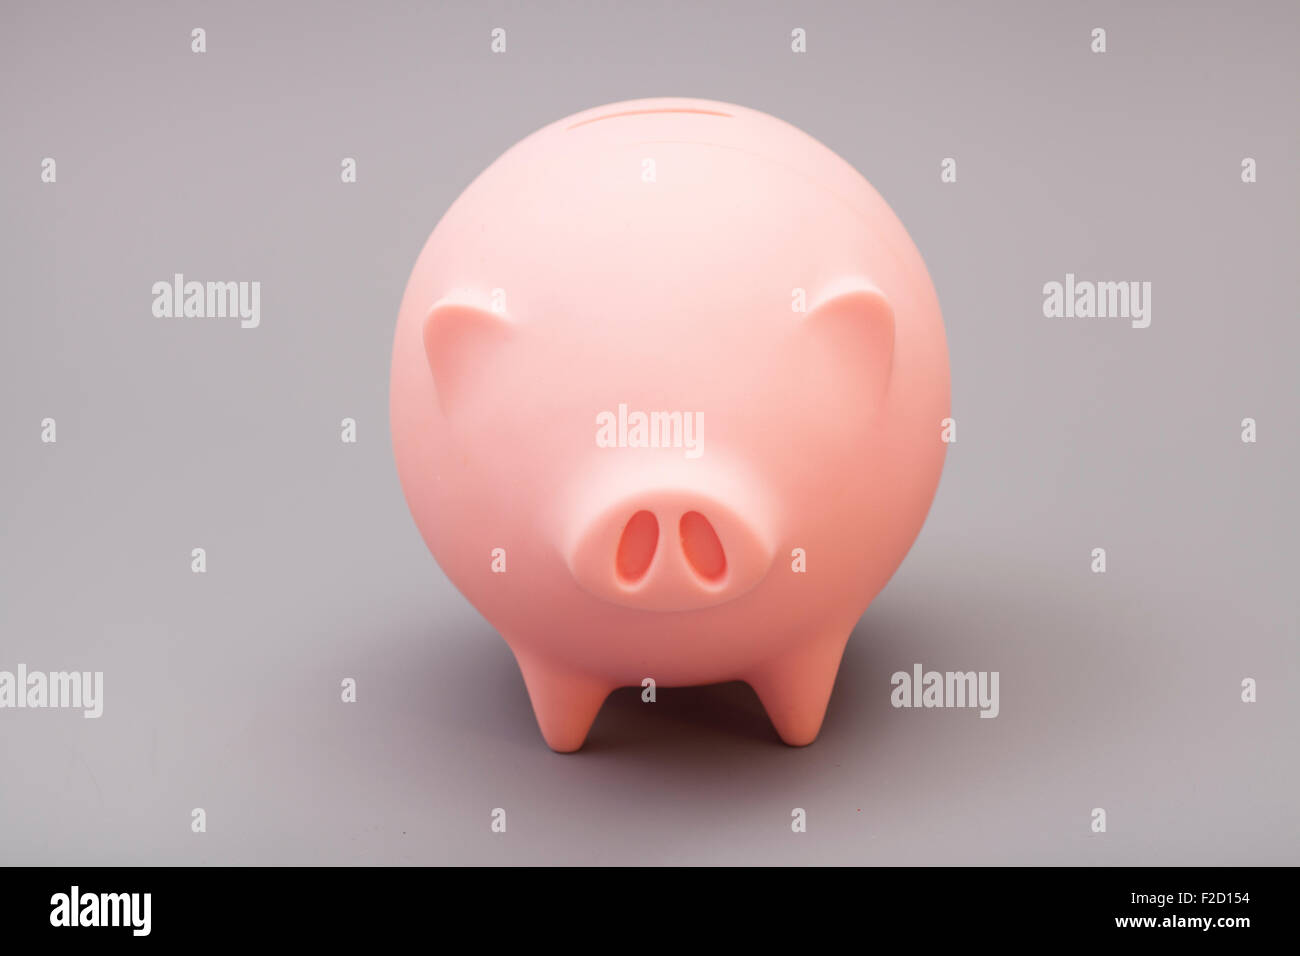 Piggy bank over gray background - Stock Image